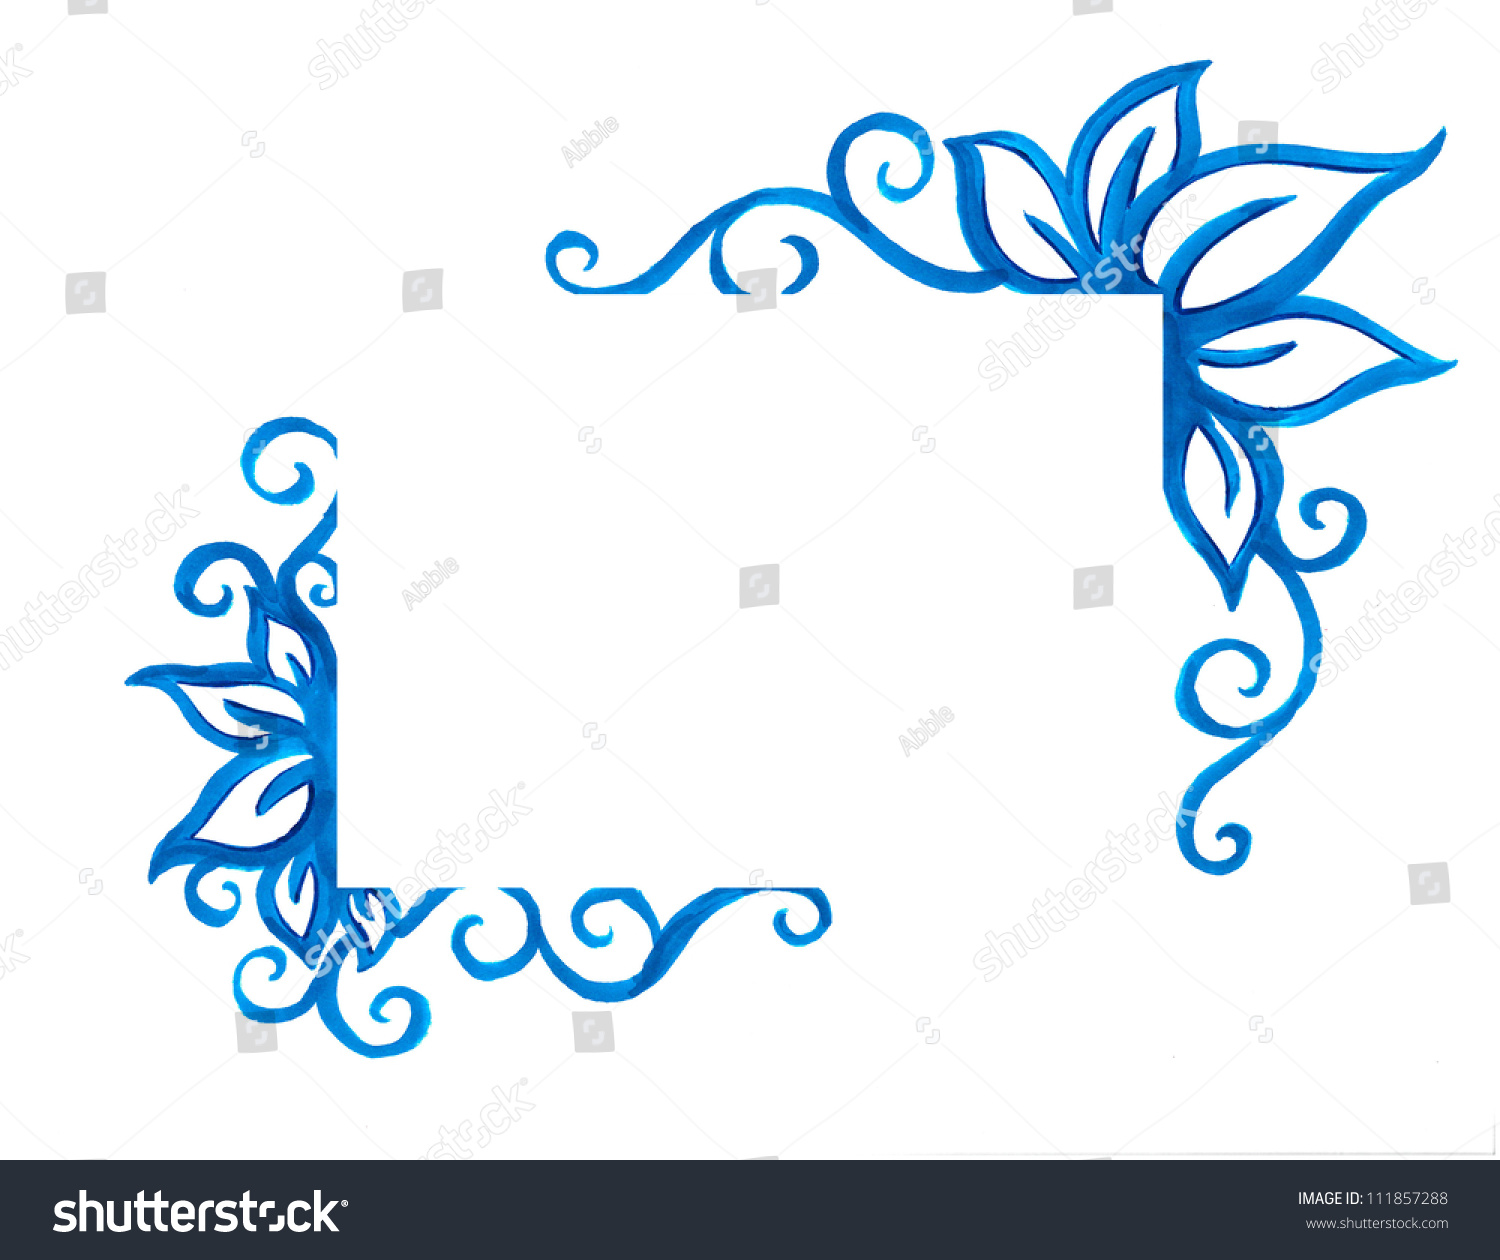 blue design element fancy decoration blank stock illustration blue design element or fancy decoration blank copyspace for text isolated on white background for